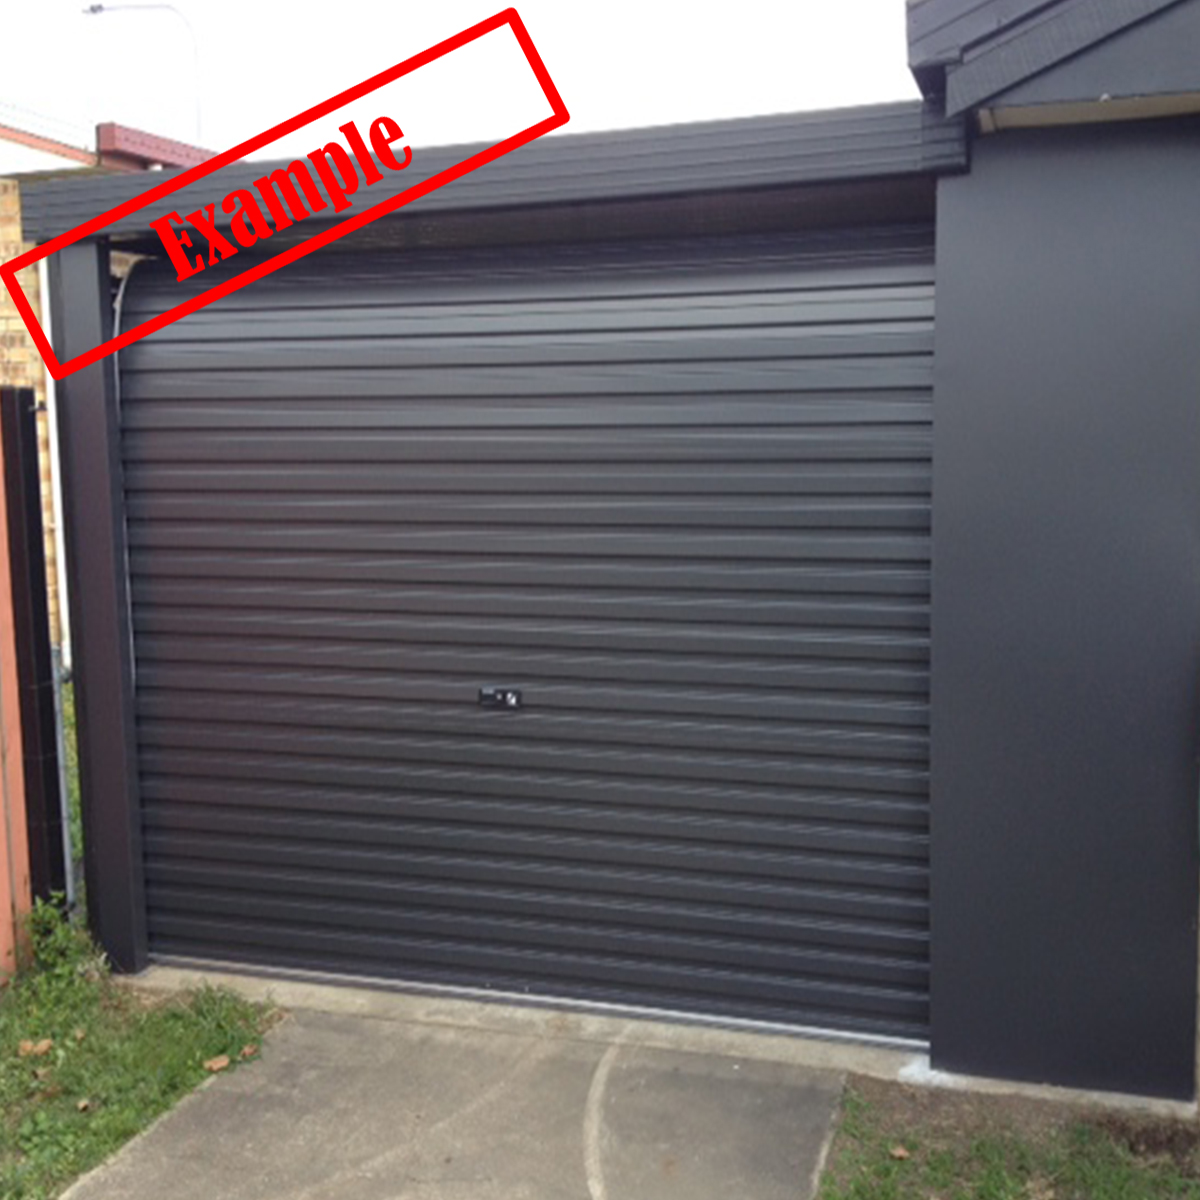 Aa Series Taurean Garage Roller Door Monument Colour 2500mmh X